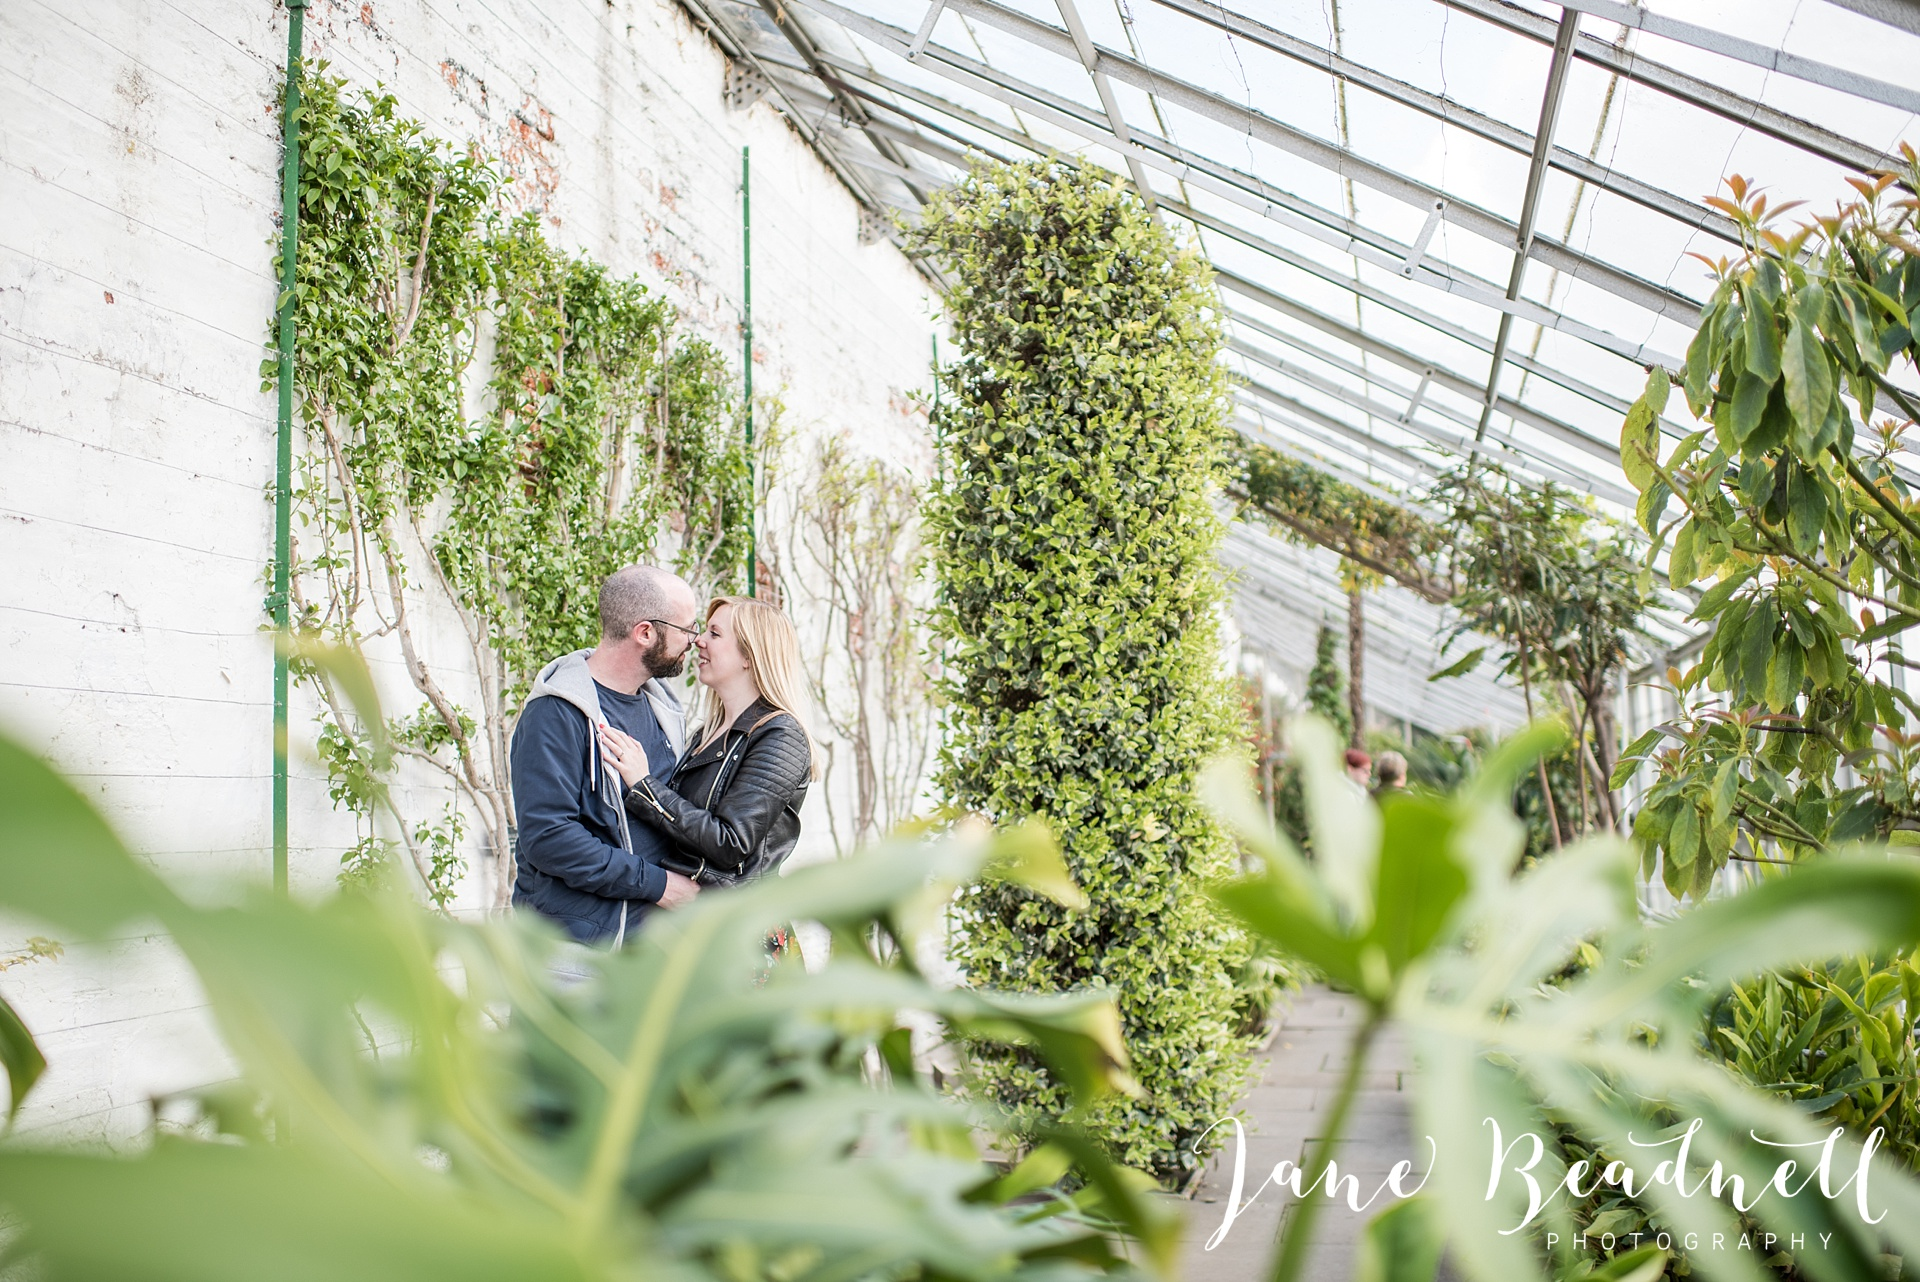 Temple Newsam engagement photography by Jane Beadnell Wedding Photography_0020